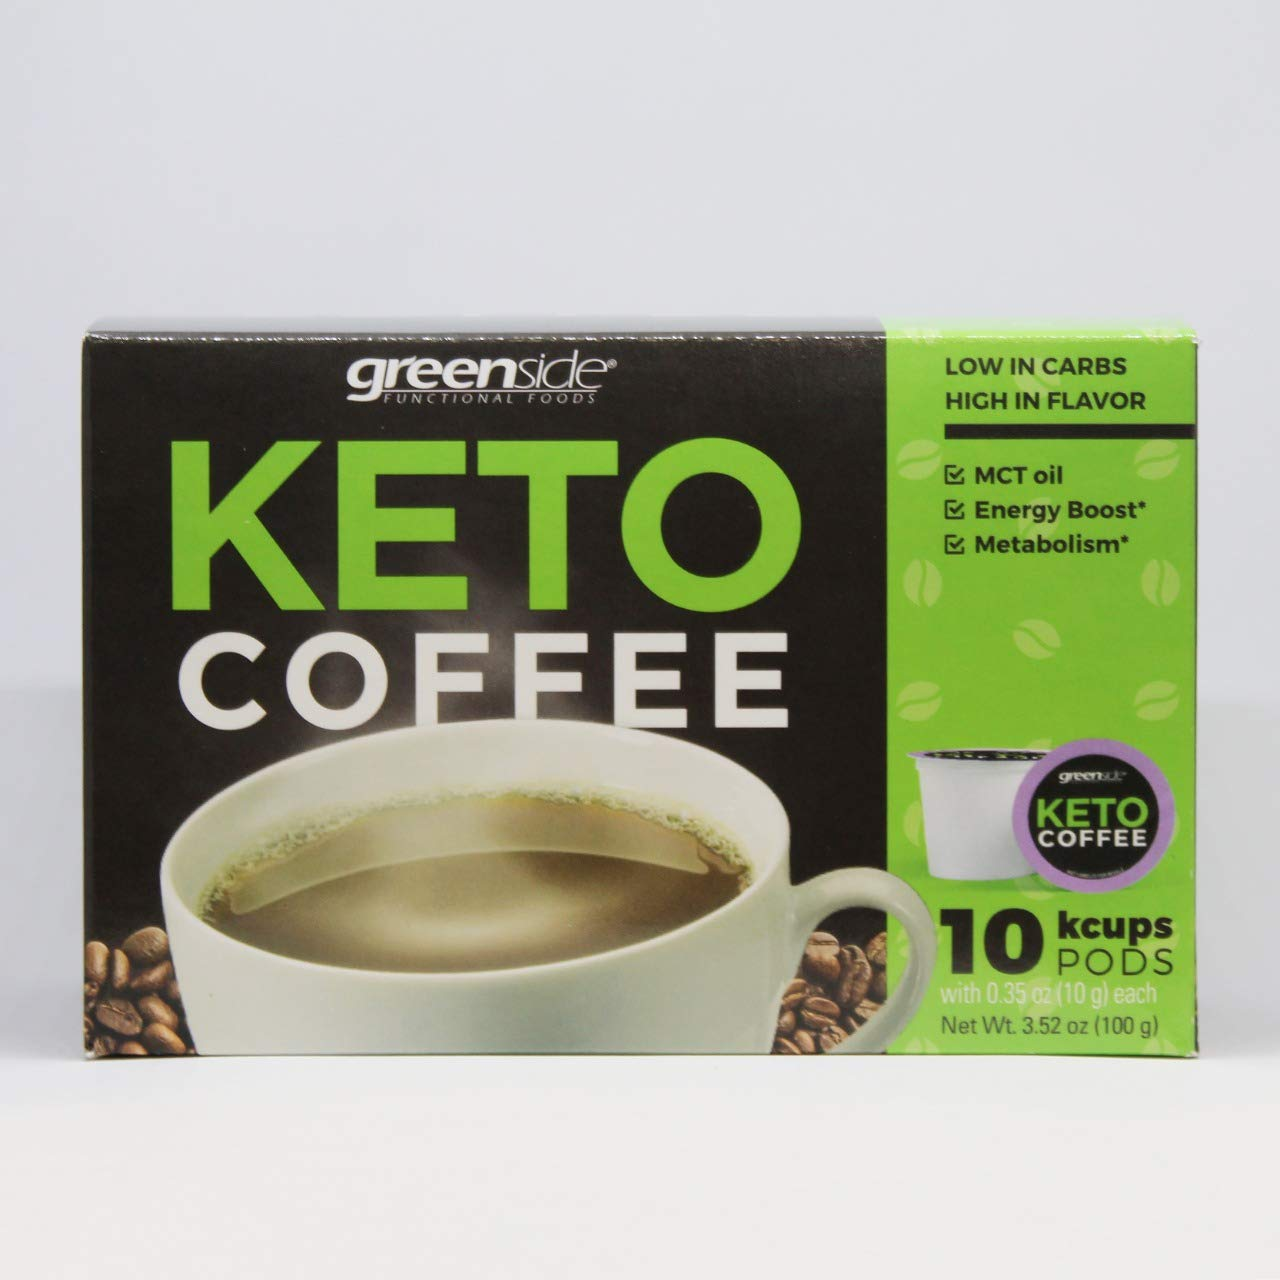 Greenside Keto Coffee French Roast with MCT Oil 150 mg, 10 K cups coffee Pods (0.35Oz/10gram each) Energy boost and metabolism, feel fresh and active all day